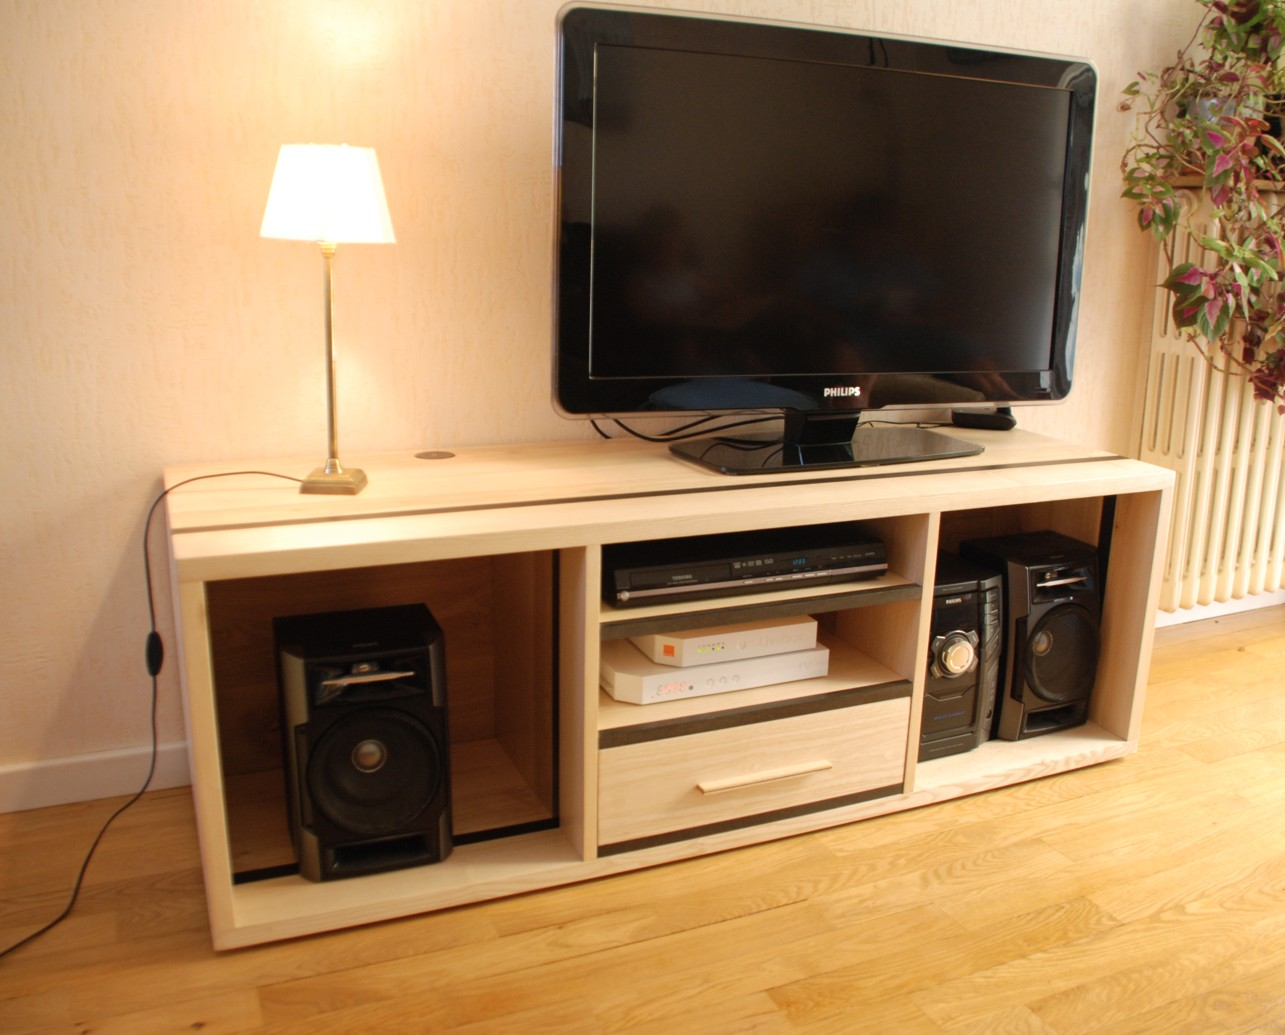 Meuble Tv Hifi Design Meuble Tv Roulettes Newbalancesoldes # Meuble Tv Frene